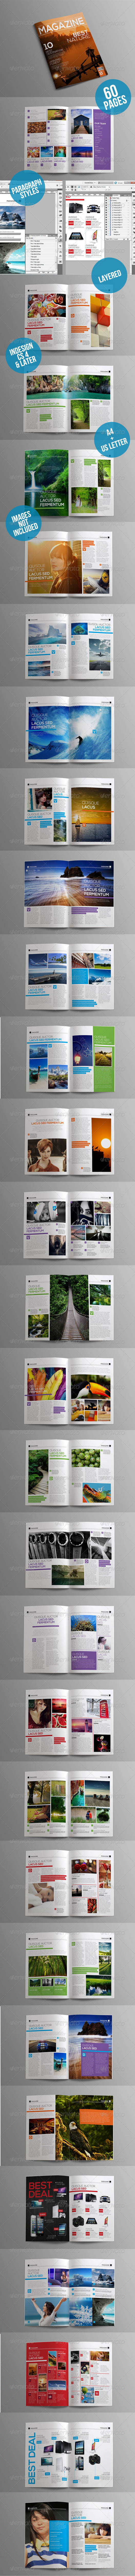 Simple Magazine - Magazines Print Templates